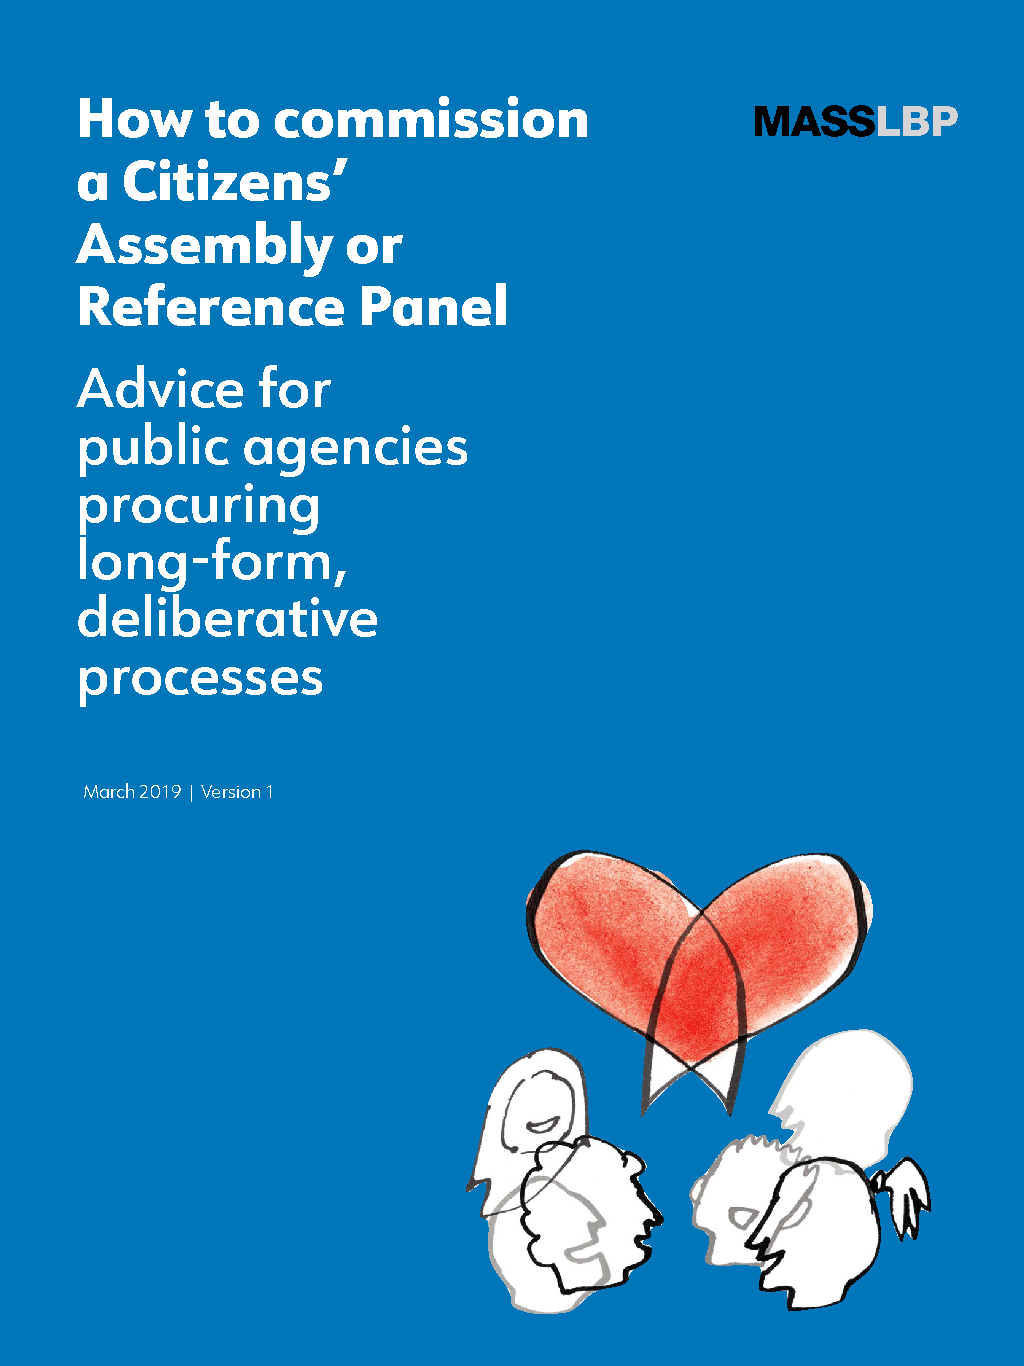 Use this MASS guide to convene your own citizens' assembly or reference panel